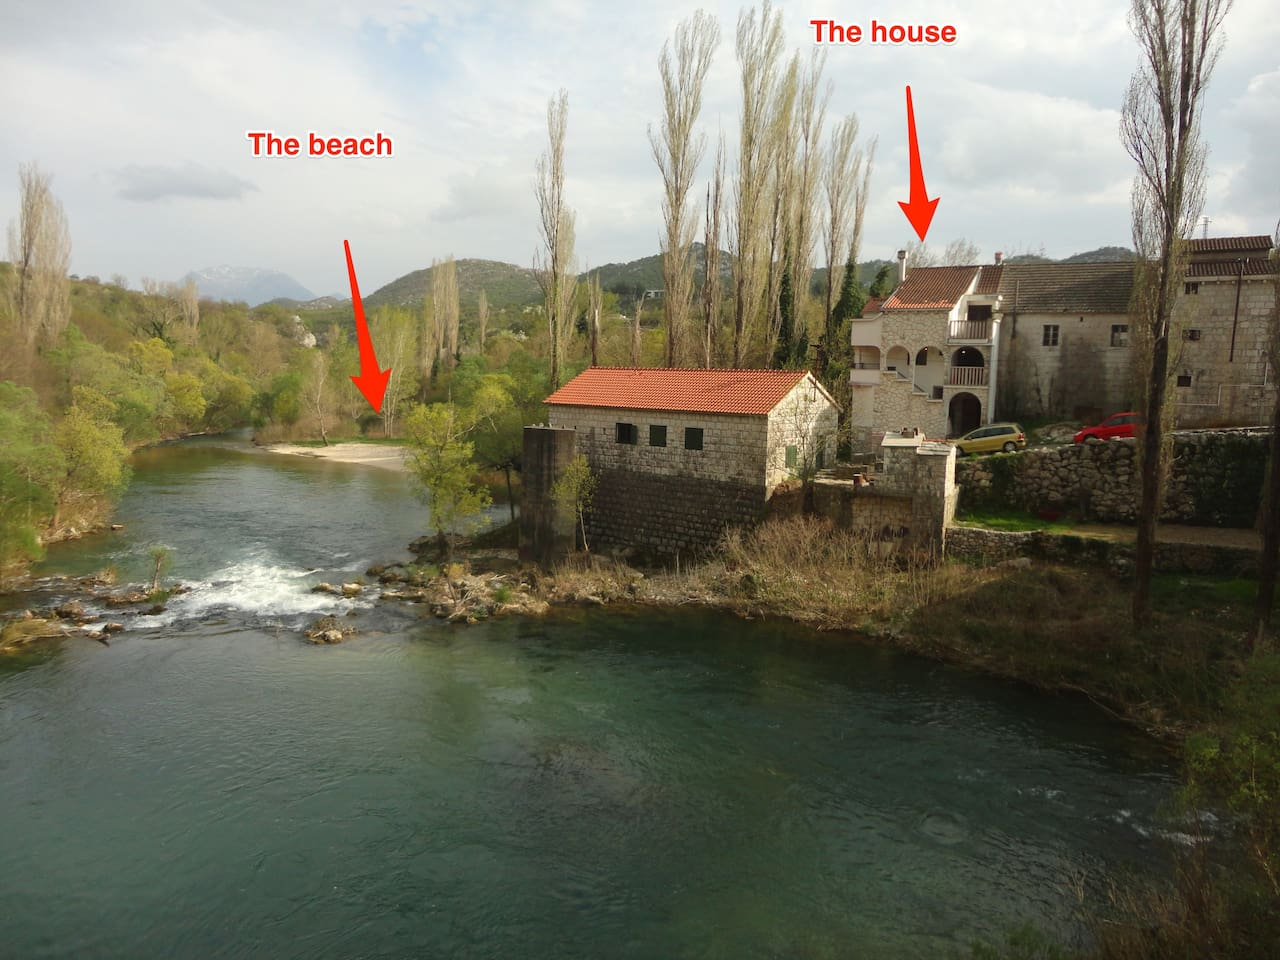 The house and the river